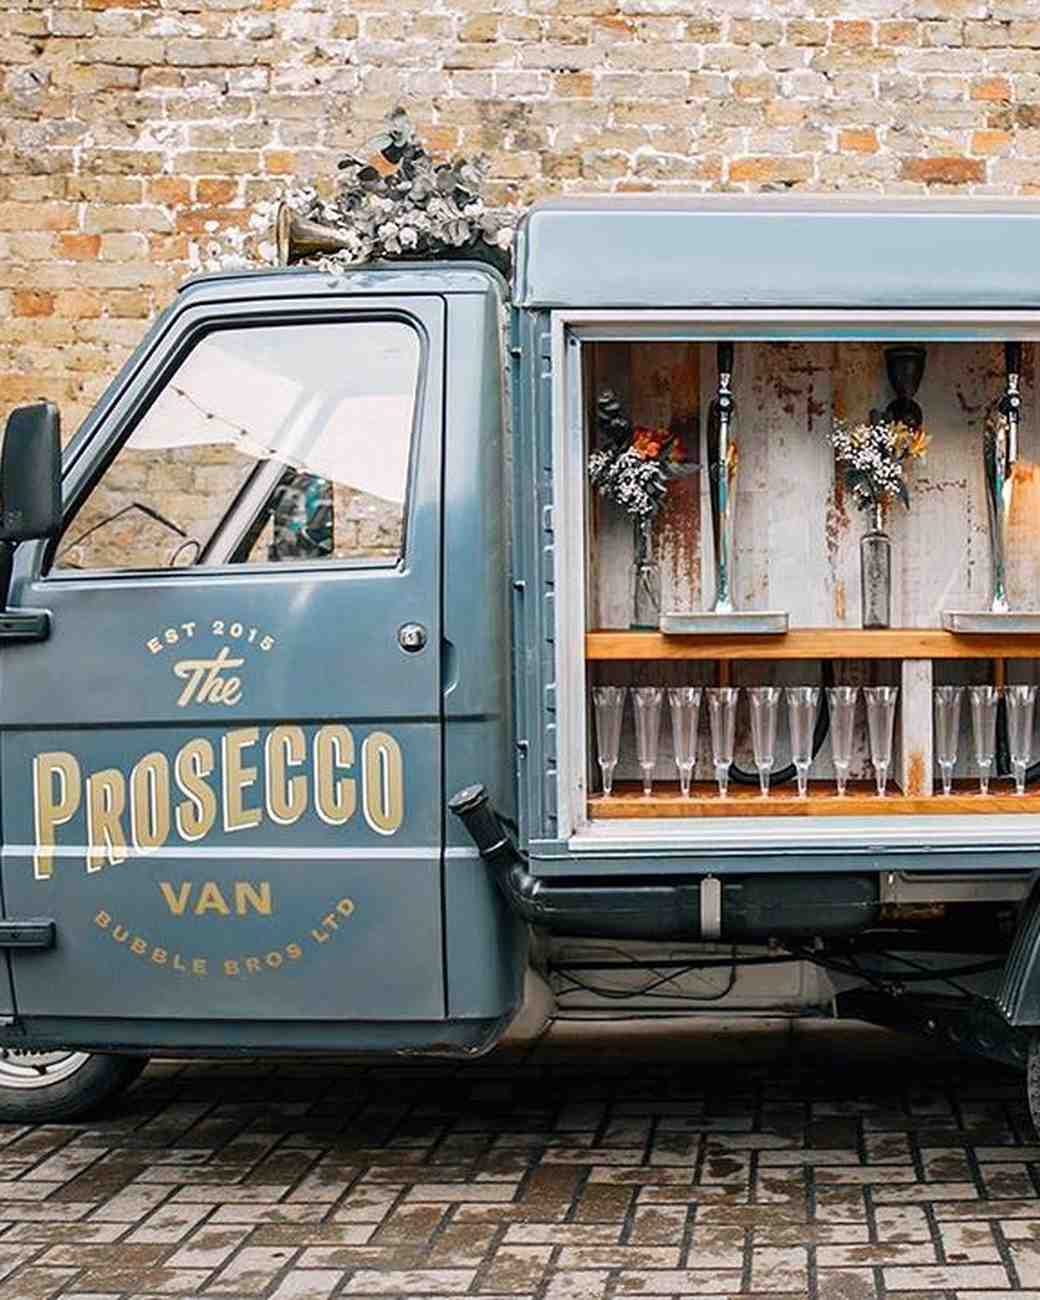 Bubble Bros Prosecco Van